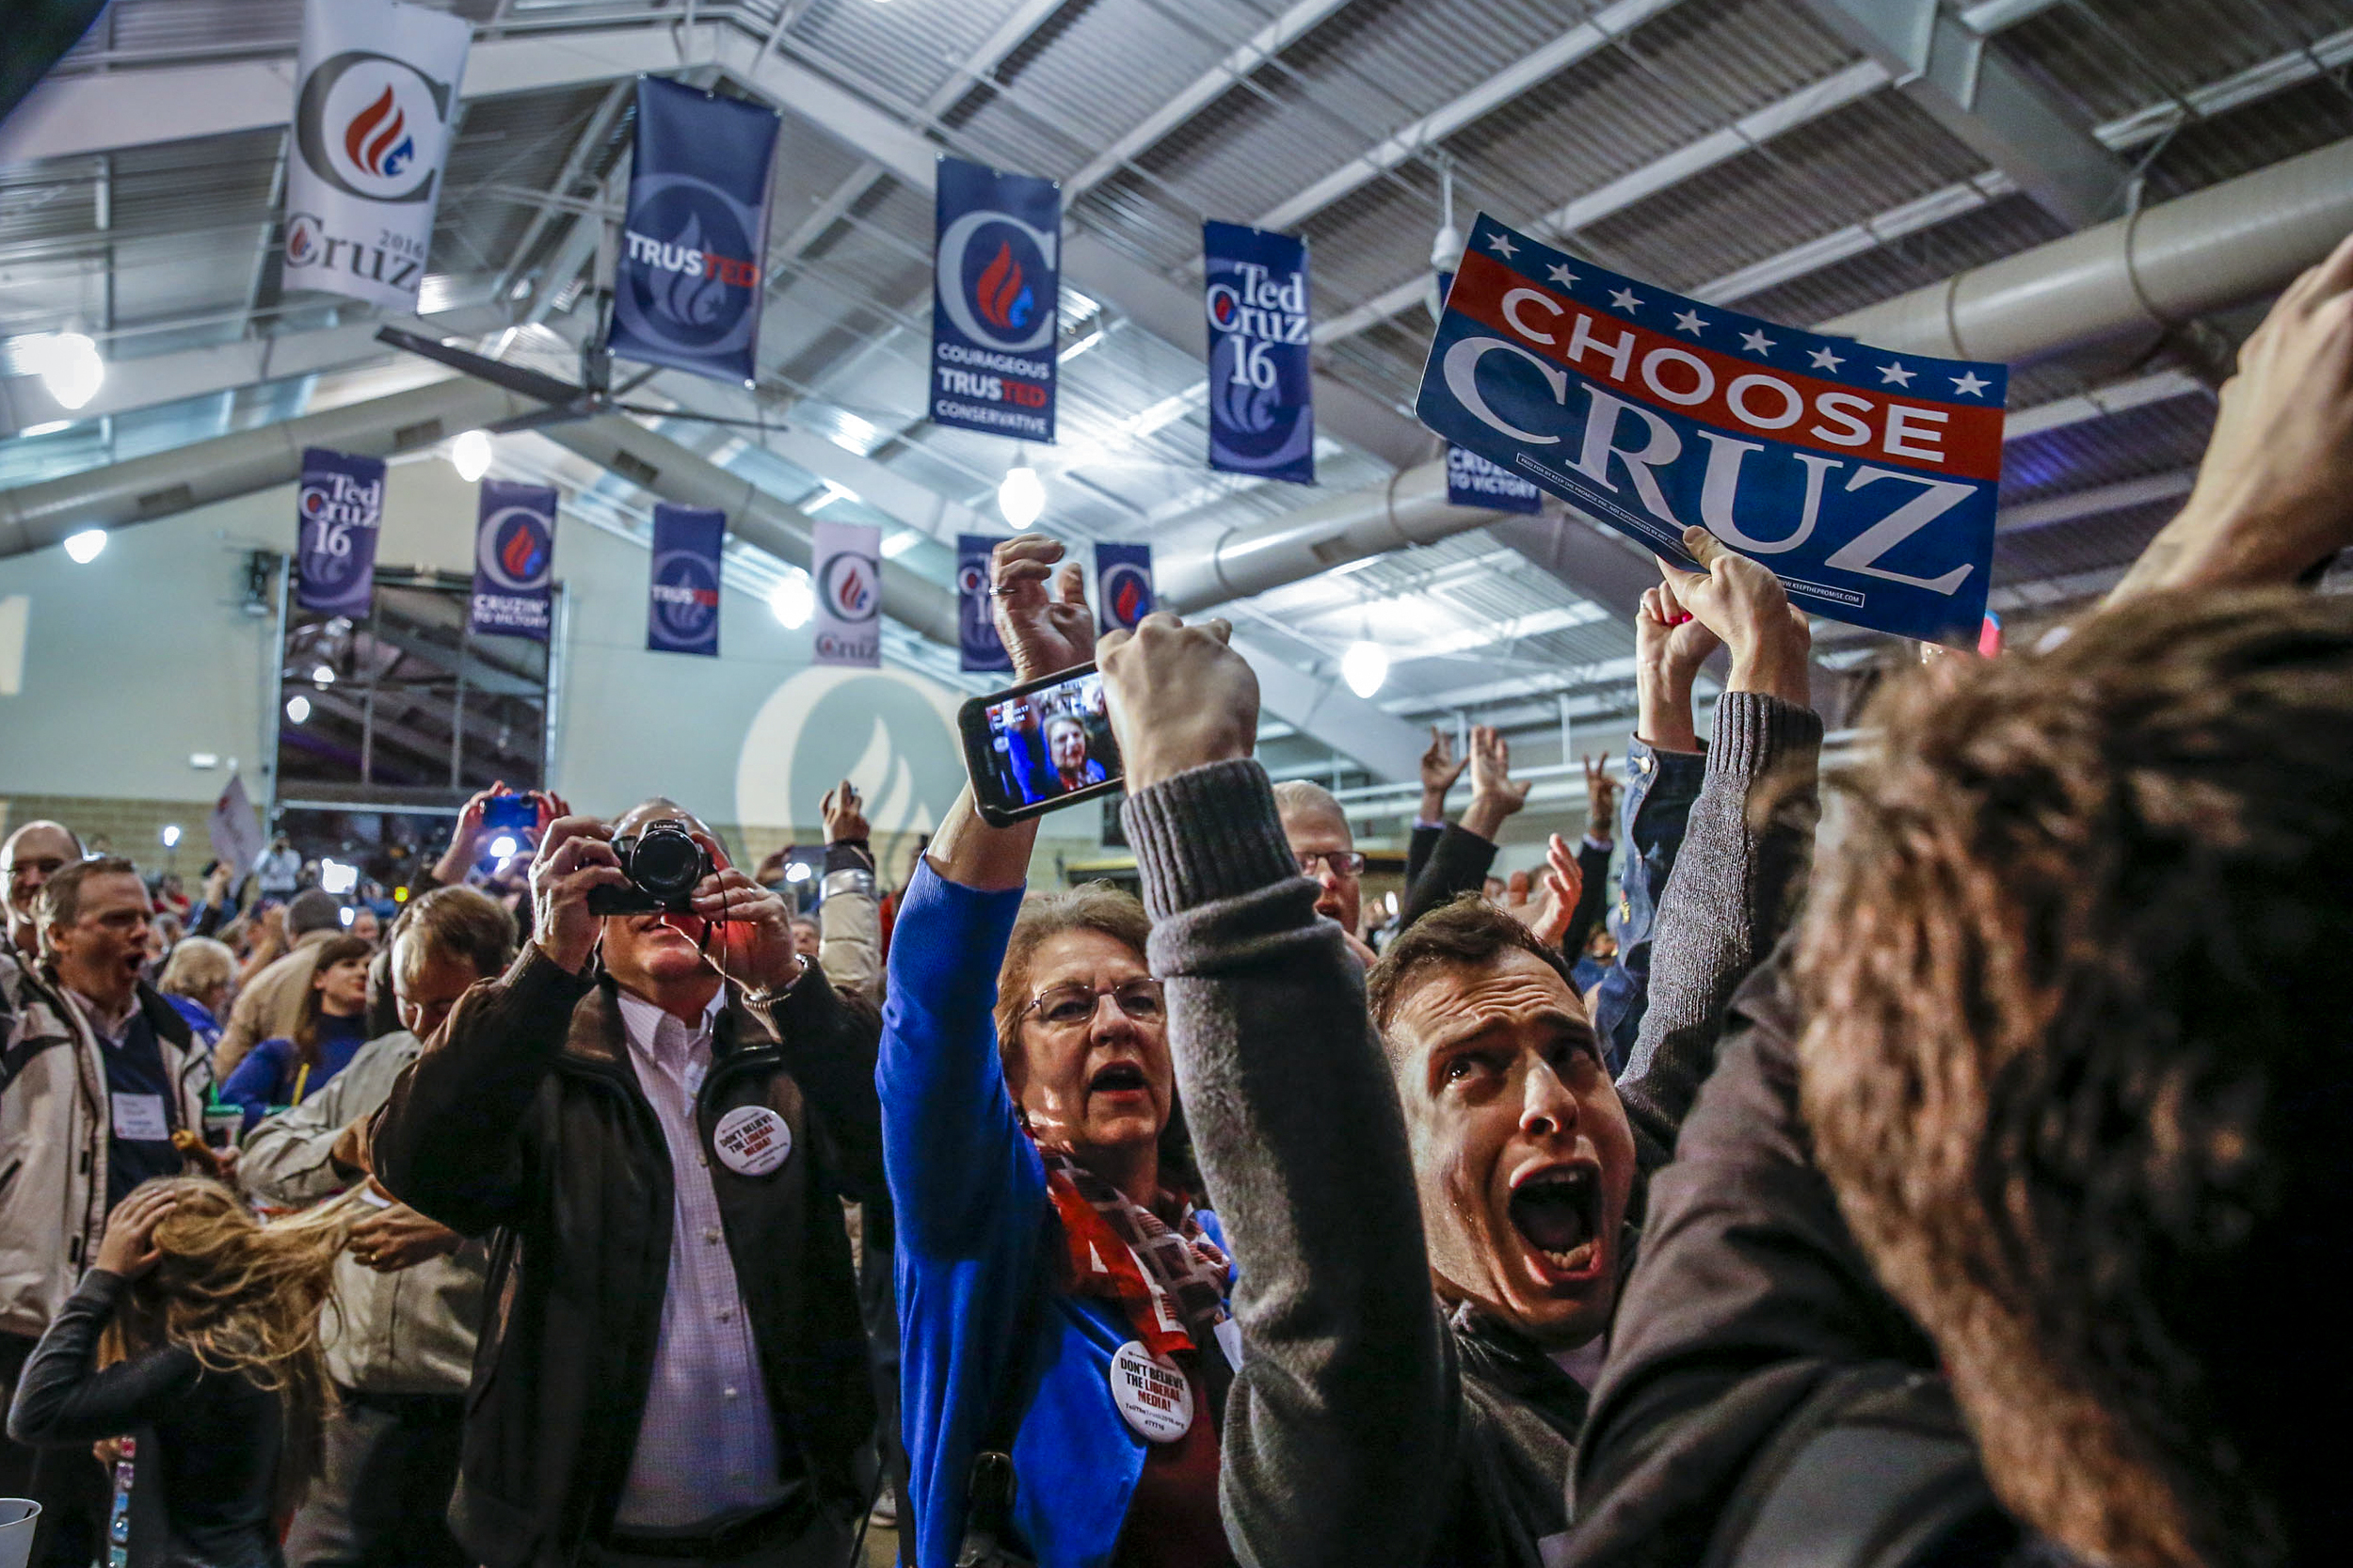 AJ Rabinowitz of Ocean County, New Jersey, cheers as presidential hopeful Ted Cruz is announced as winner of the Iowa caucus at the Iowa State Fair Elwell Center in Des Moines, Iowa, Monday, Feb. 1, 2016.